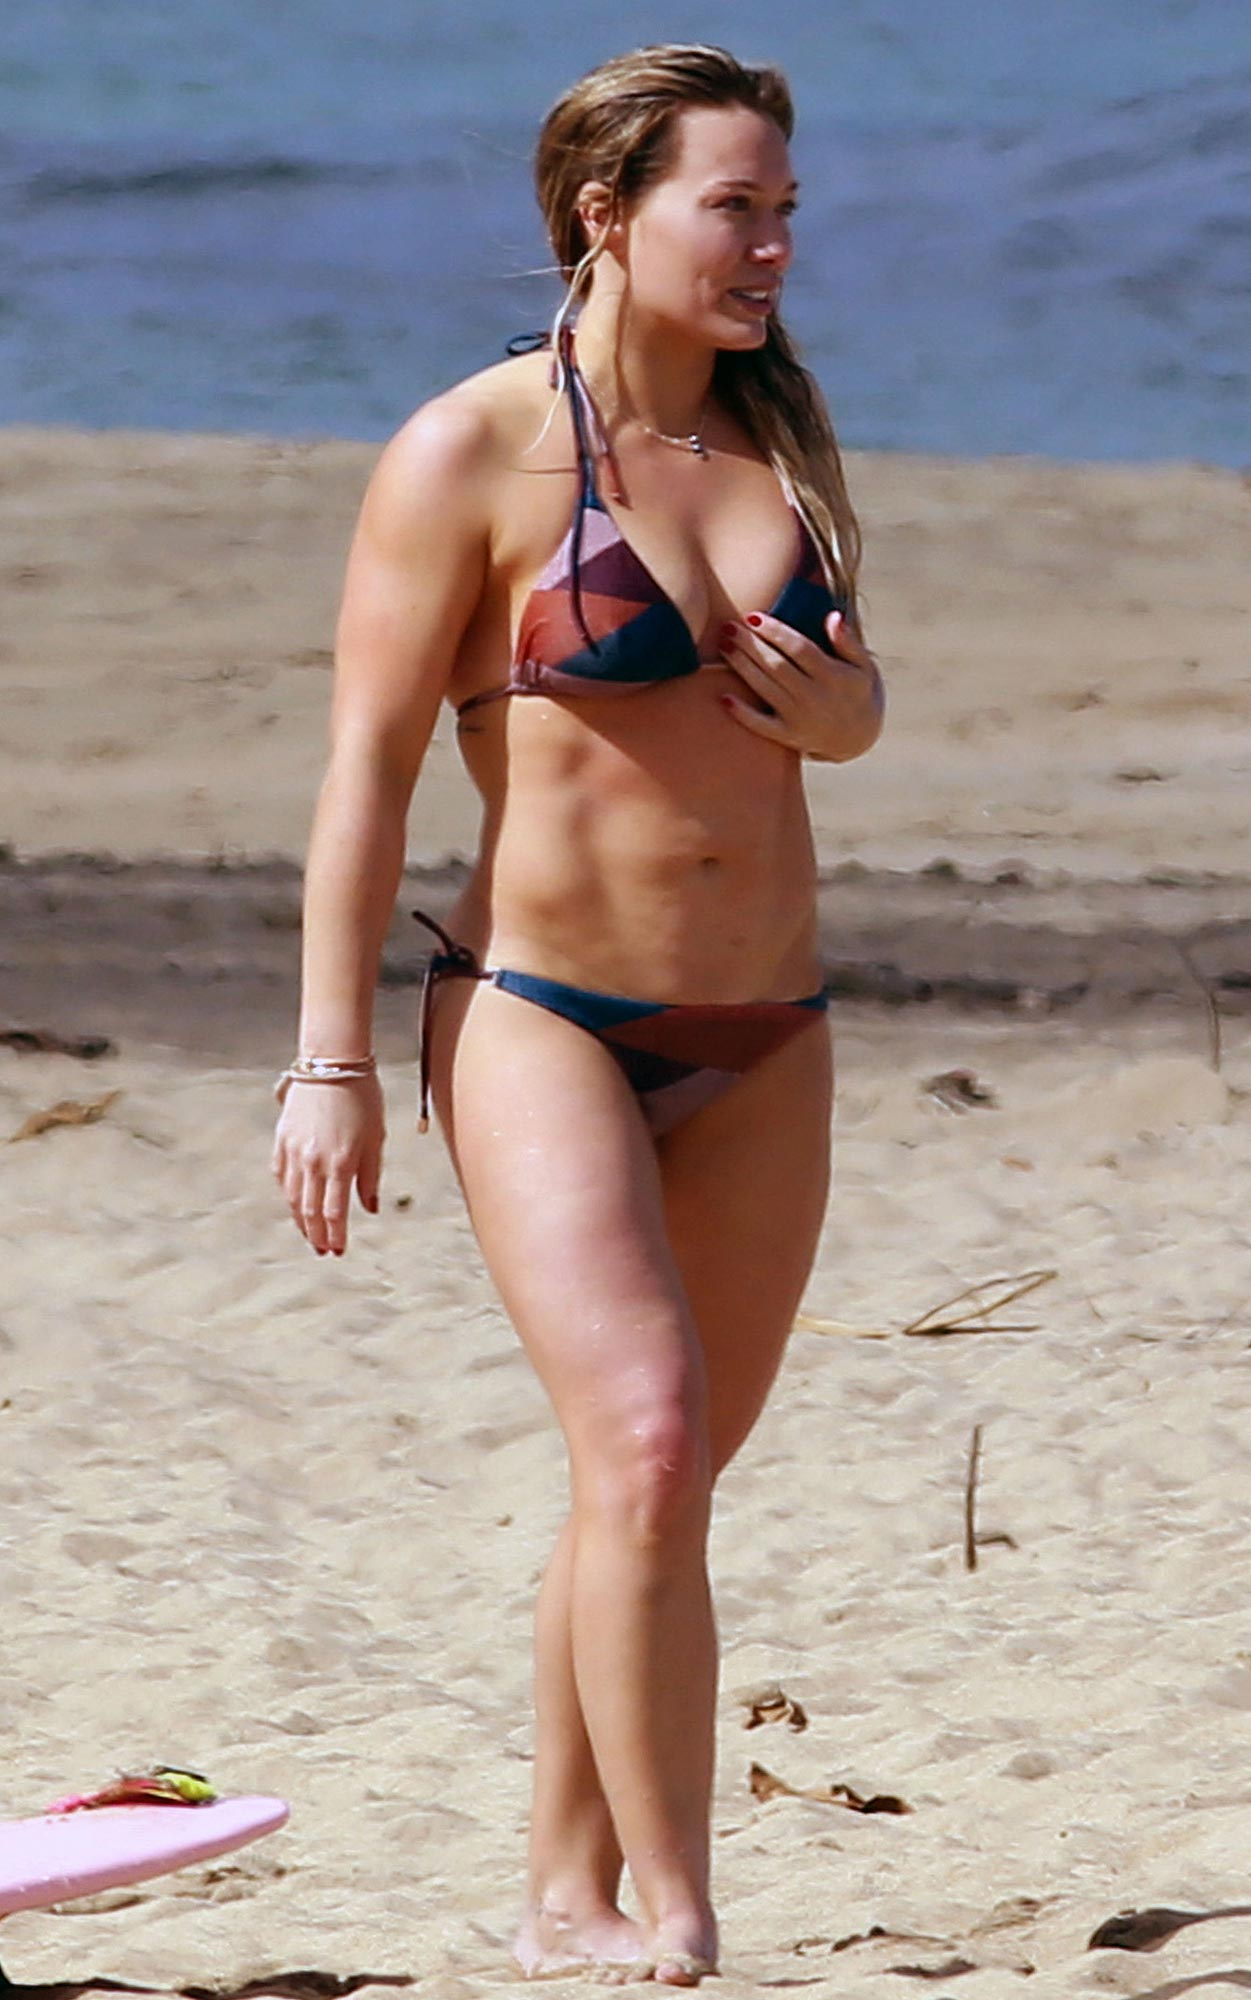 *PREMIUM EXCLUSIVE* Kauai, HI - Hilary Duff is spotted on a tropical holiday on the island of Kauai. The Actress/Singer enjoyed the warm weather on a 2 piece bikini, showing off a her great body. **MANDATORY CREDIT MUST READ: FameFlynet/AKM-GSI** AKM-GSI January 01, 2017 To License These Photos, Please Contact : Maria Buda (917) 242-1505 mbuda@akmgsi.com sales@akmgsi.com or Mark Satter (317) 691-9592 msatter@akmgsi.com sales@akmgsi.com www.akmgsi.com